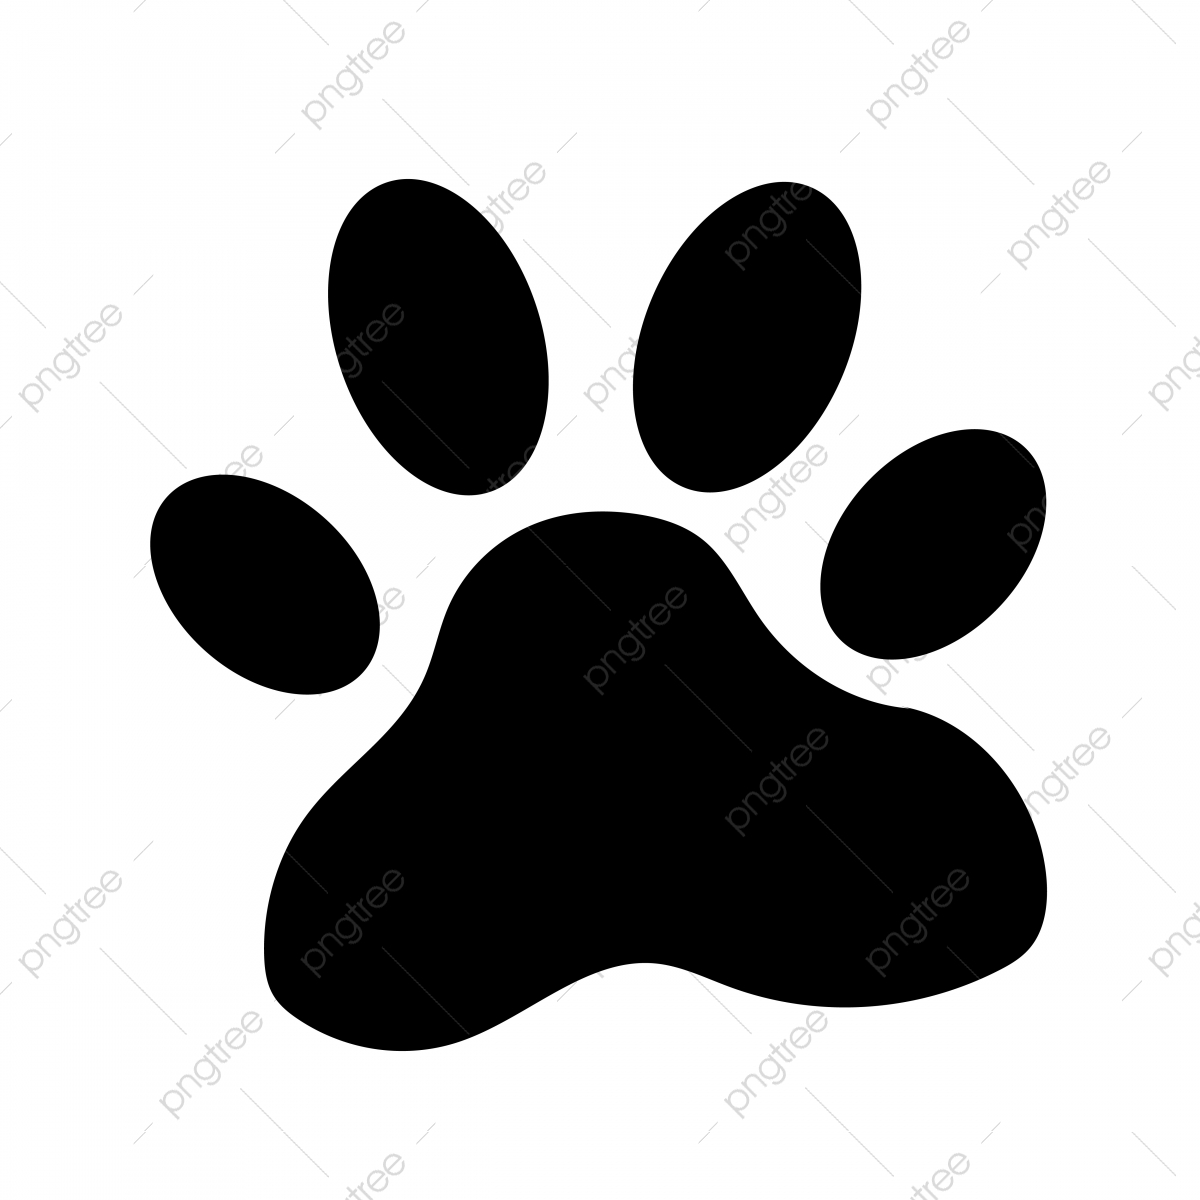 Paw Prints Png Images Vector And Psd Files Free Download On Pngtree Multiple sizes and related images are all free on clker.com. https pngtree com freepng animal paw print icon 5092683 html